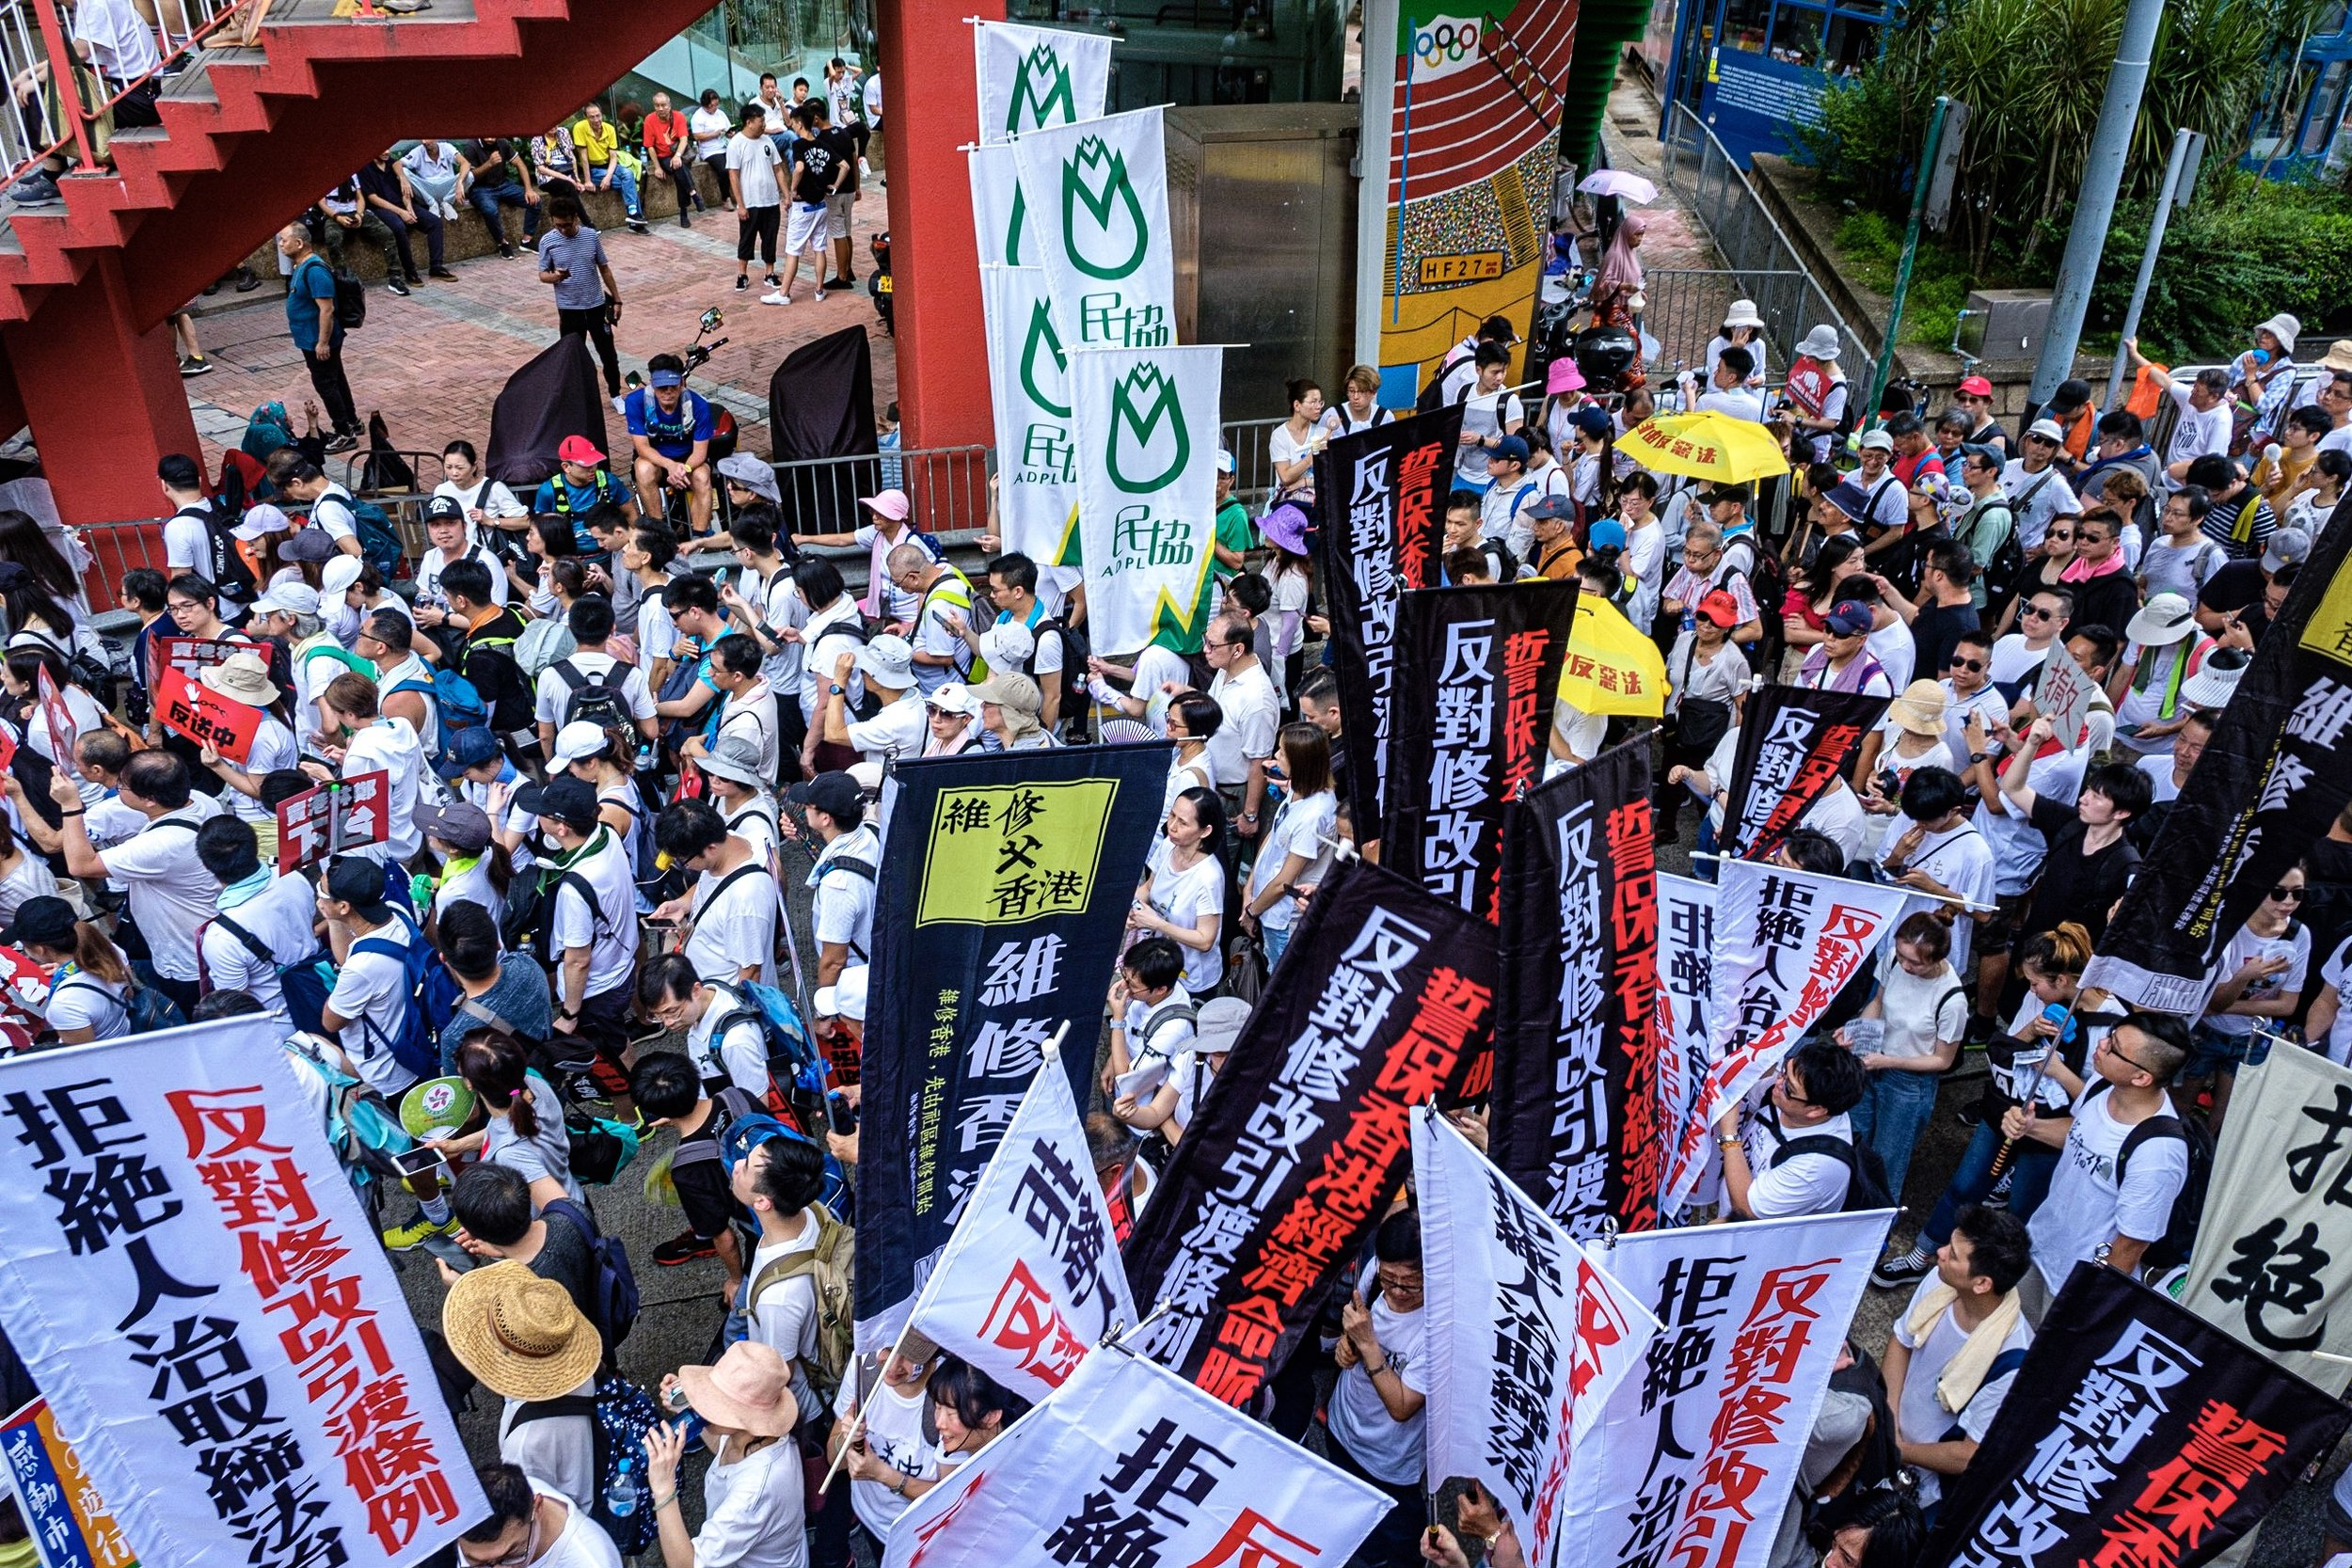 One-million strong anti-extradition bill march - June 9, 2010